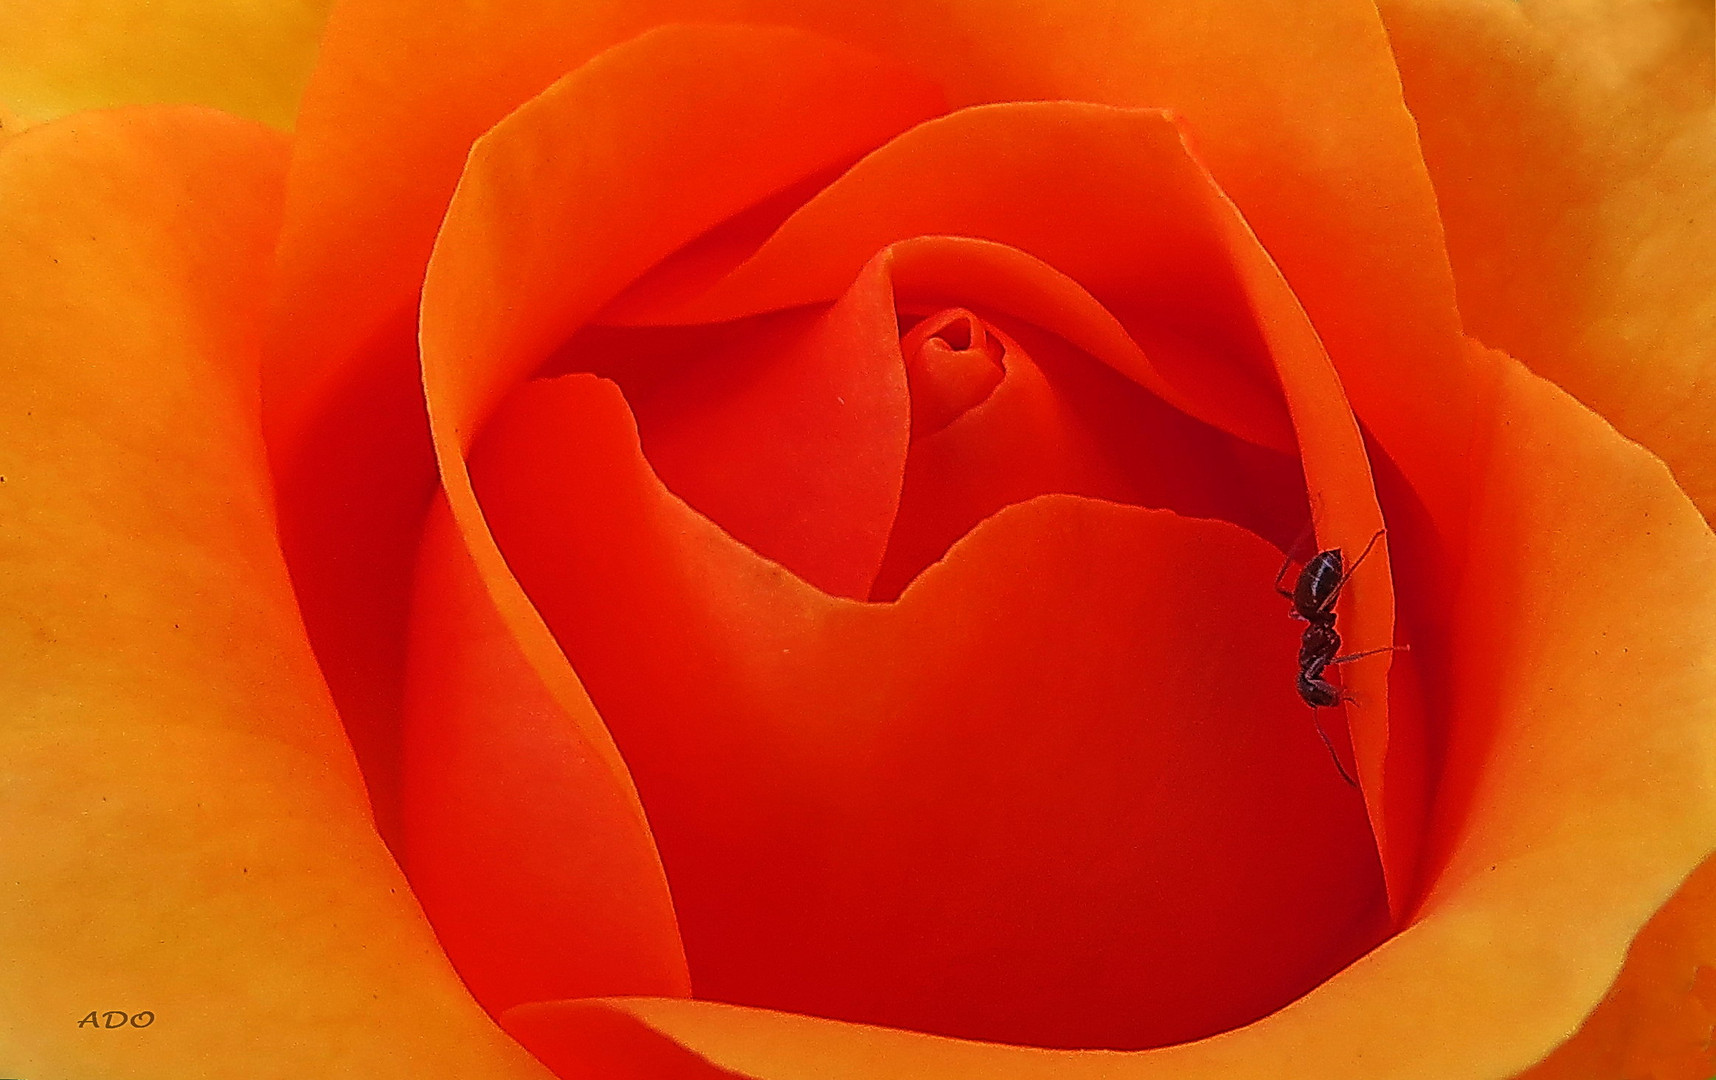 The Rose and the Ant